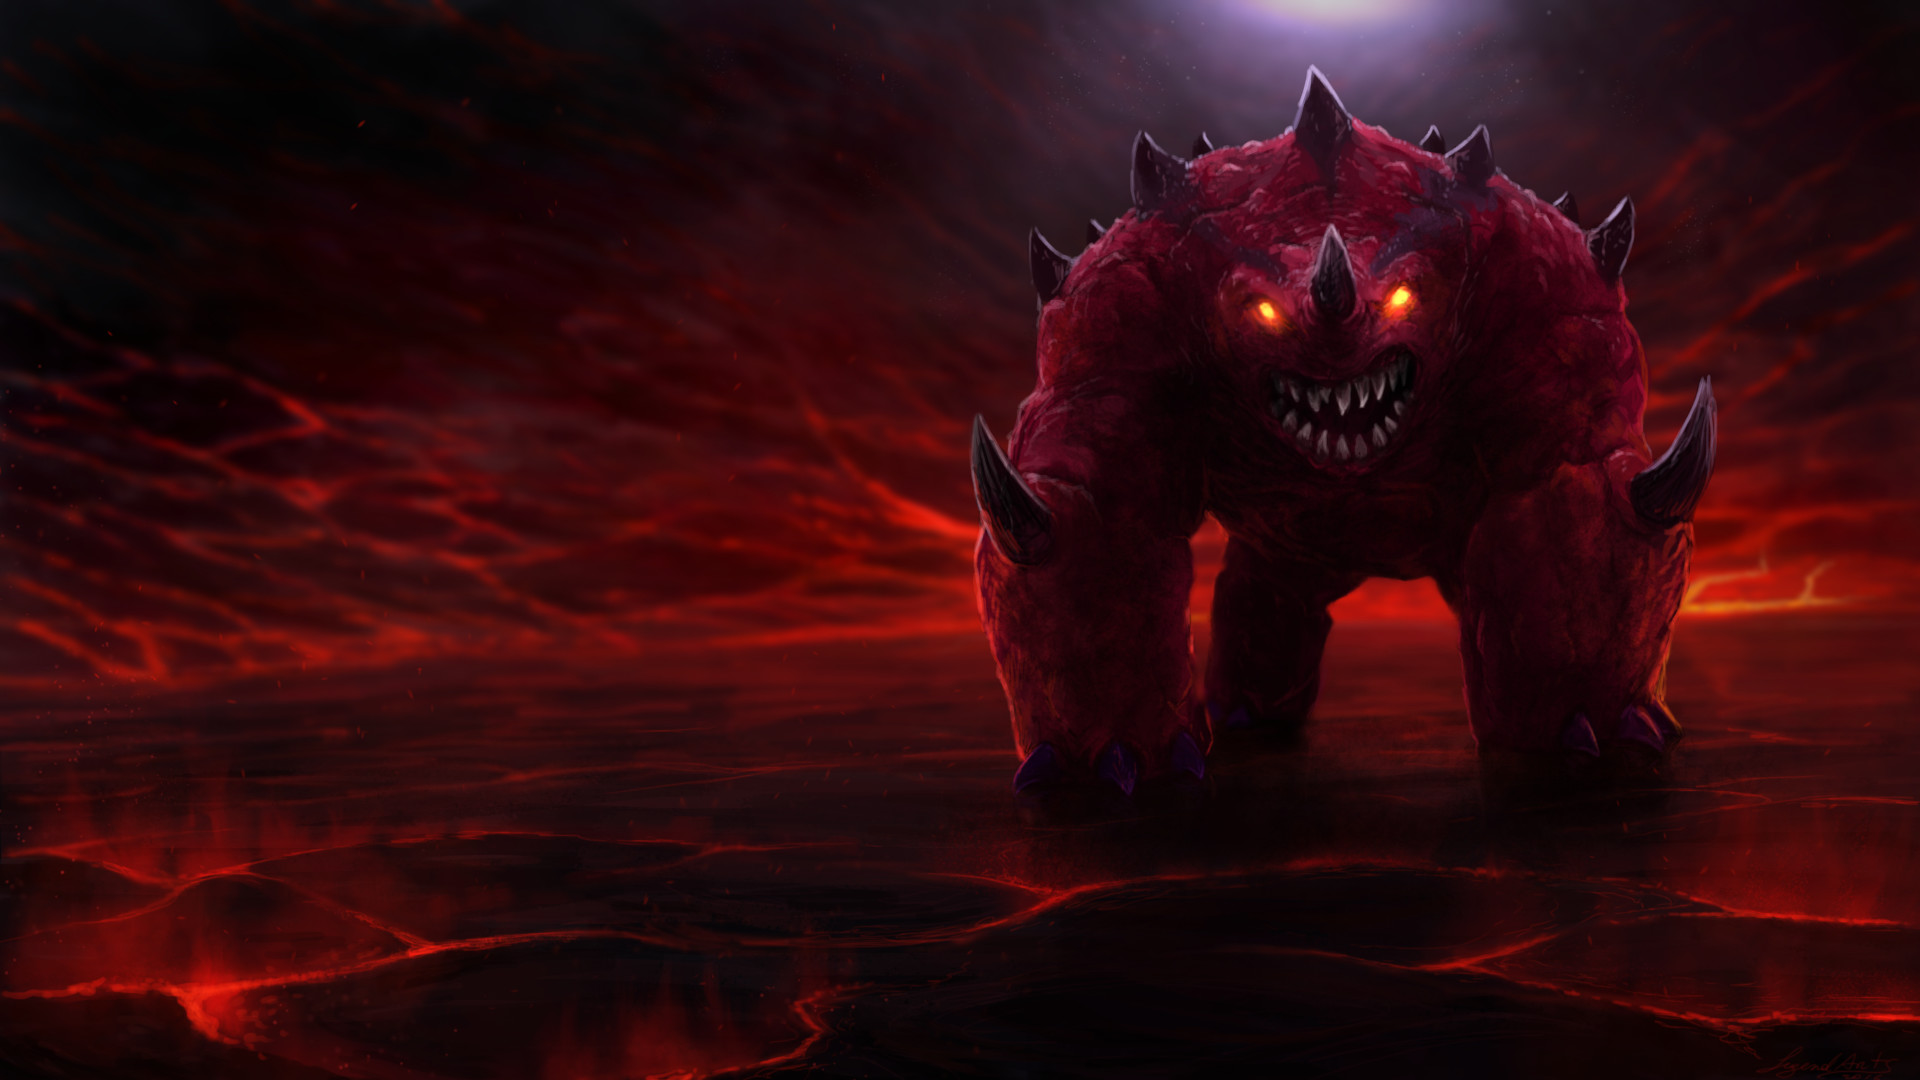 Res: 1920x1080, (4000x2400) 2007sca Old School RuneScape Jad boss by RS LegendArts on  DeviantA